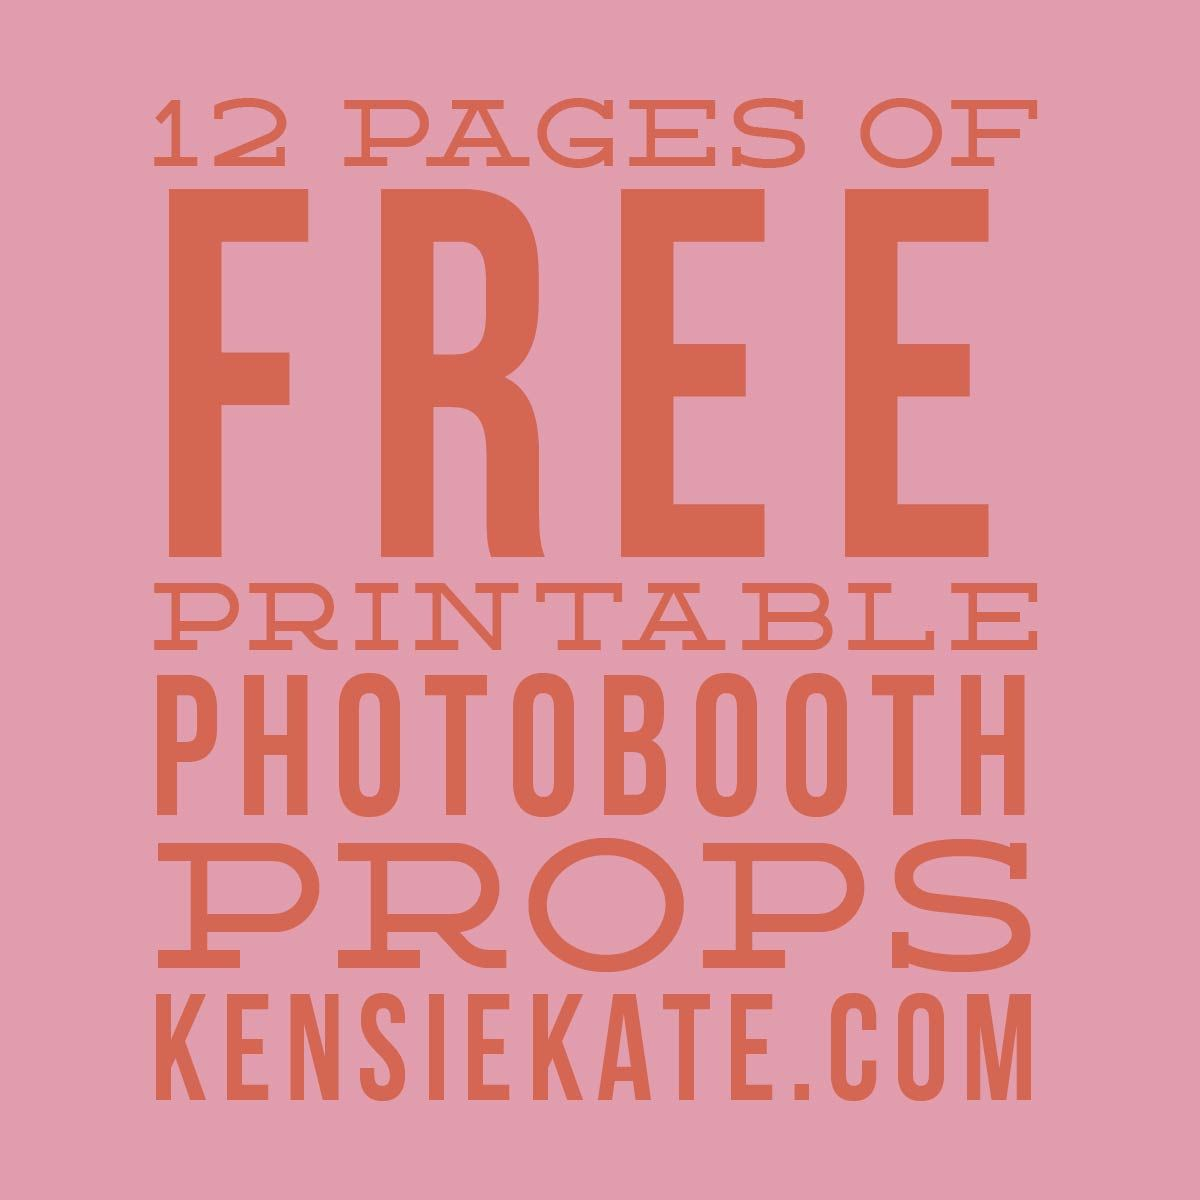 picture regarding Free Printable Photo Booth Props Template named 12 internet pages of cost-free printable photobooth props An Honorable